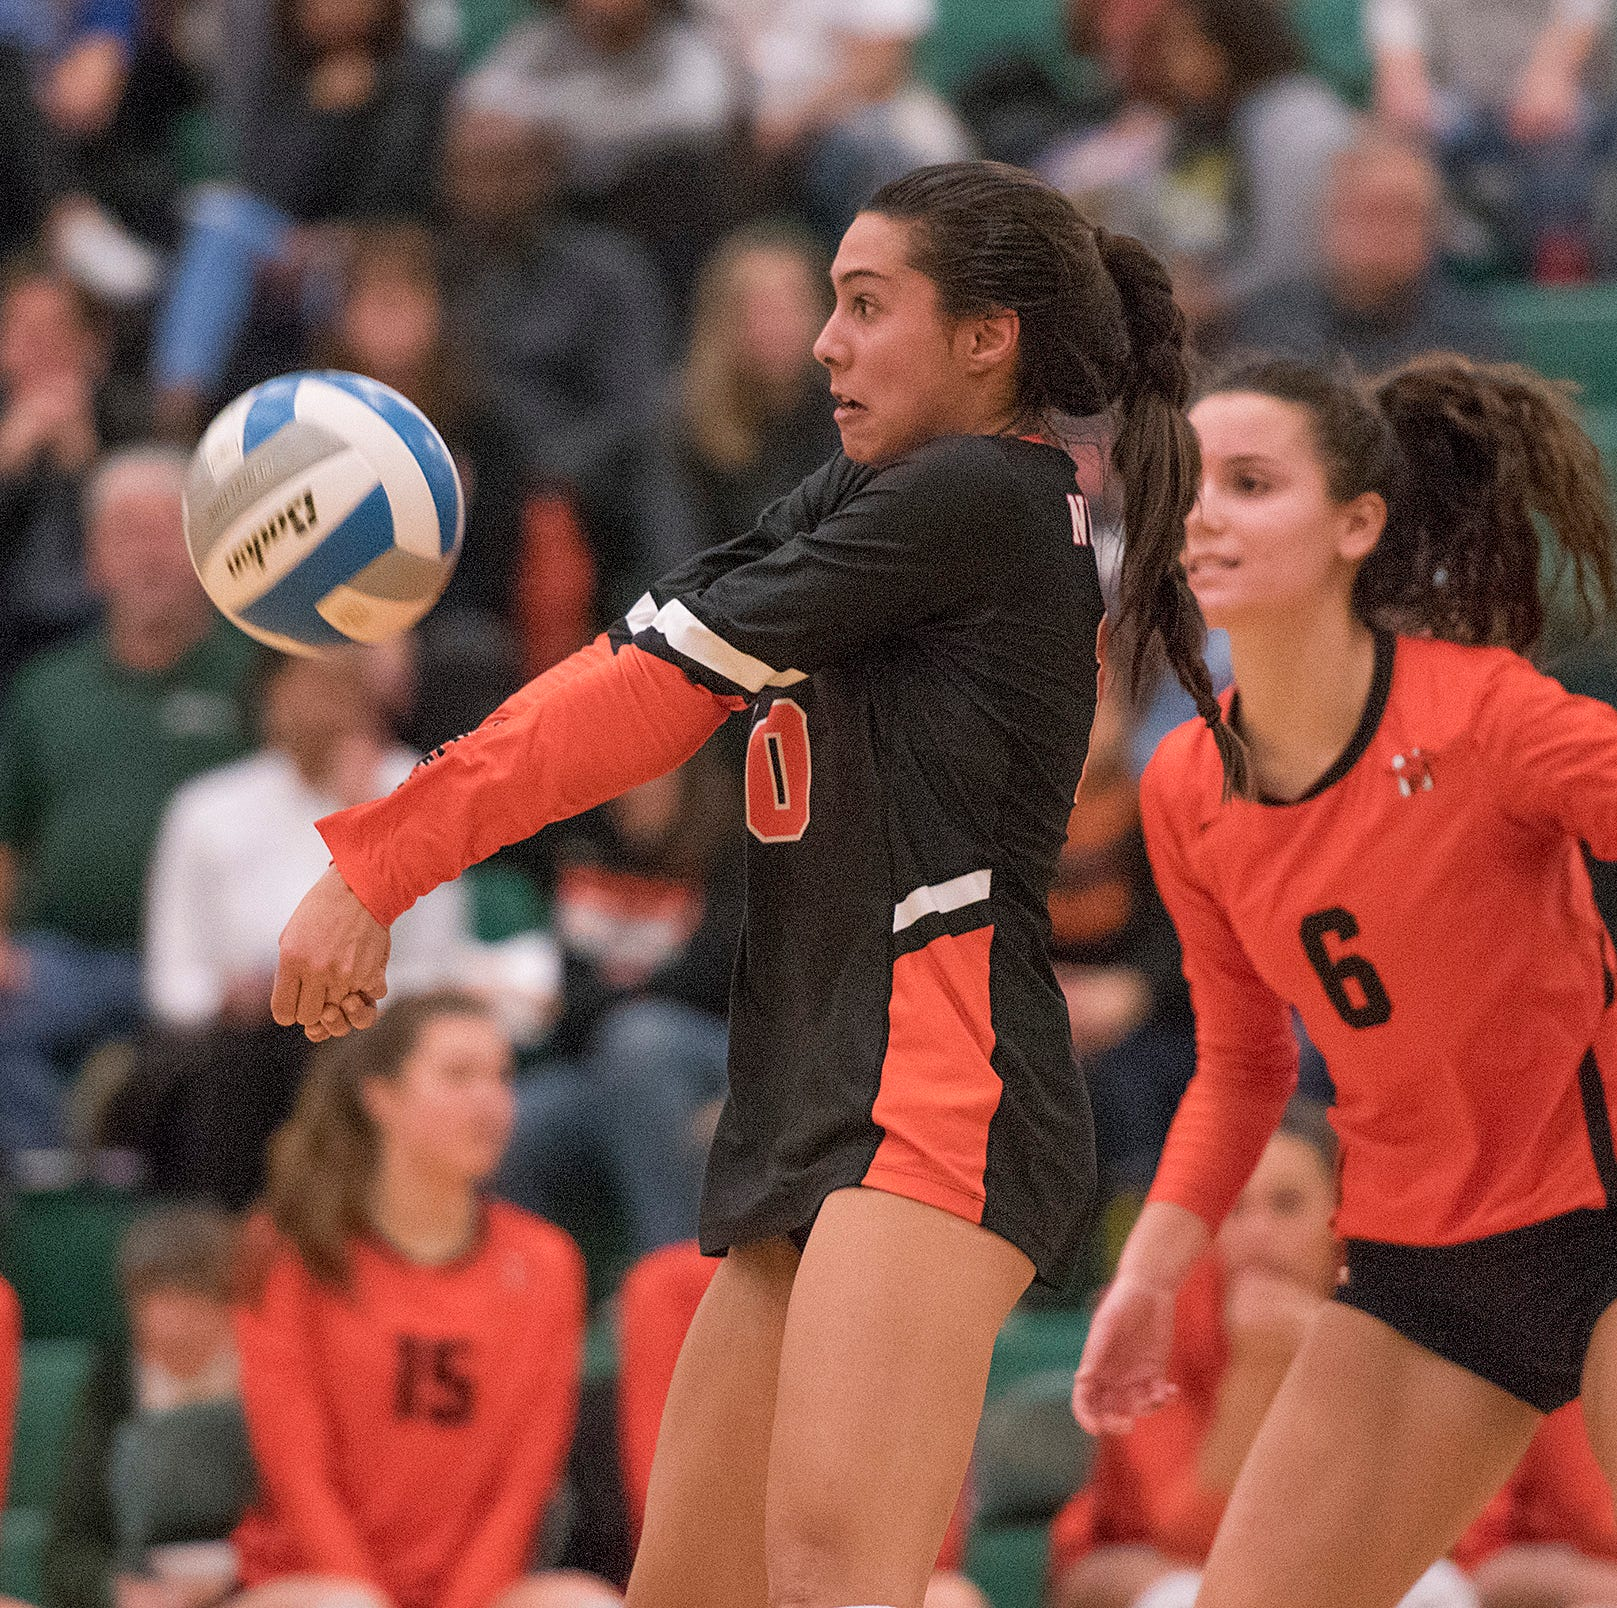 Understudy Setla fills libero void as Northville sweeps Churchill in D1 quarterfinal